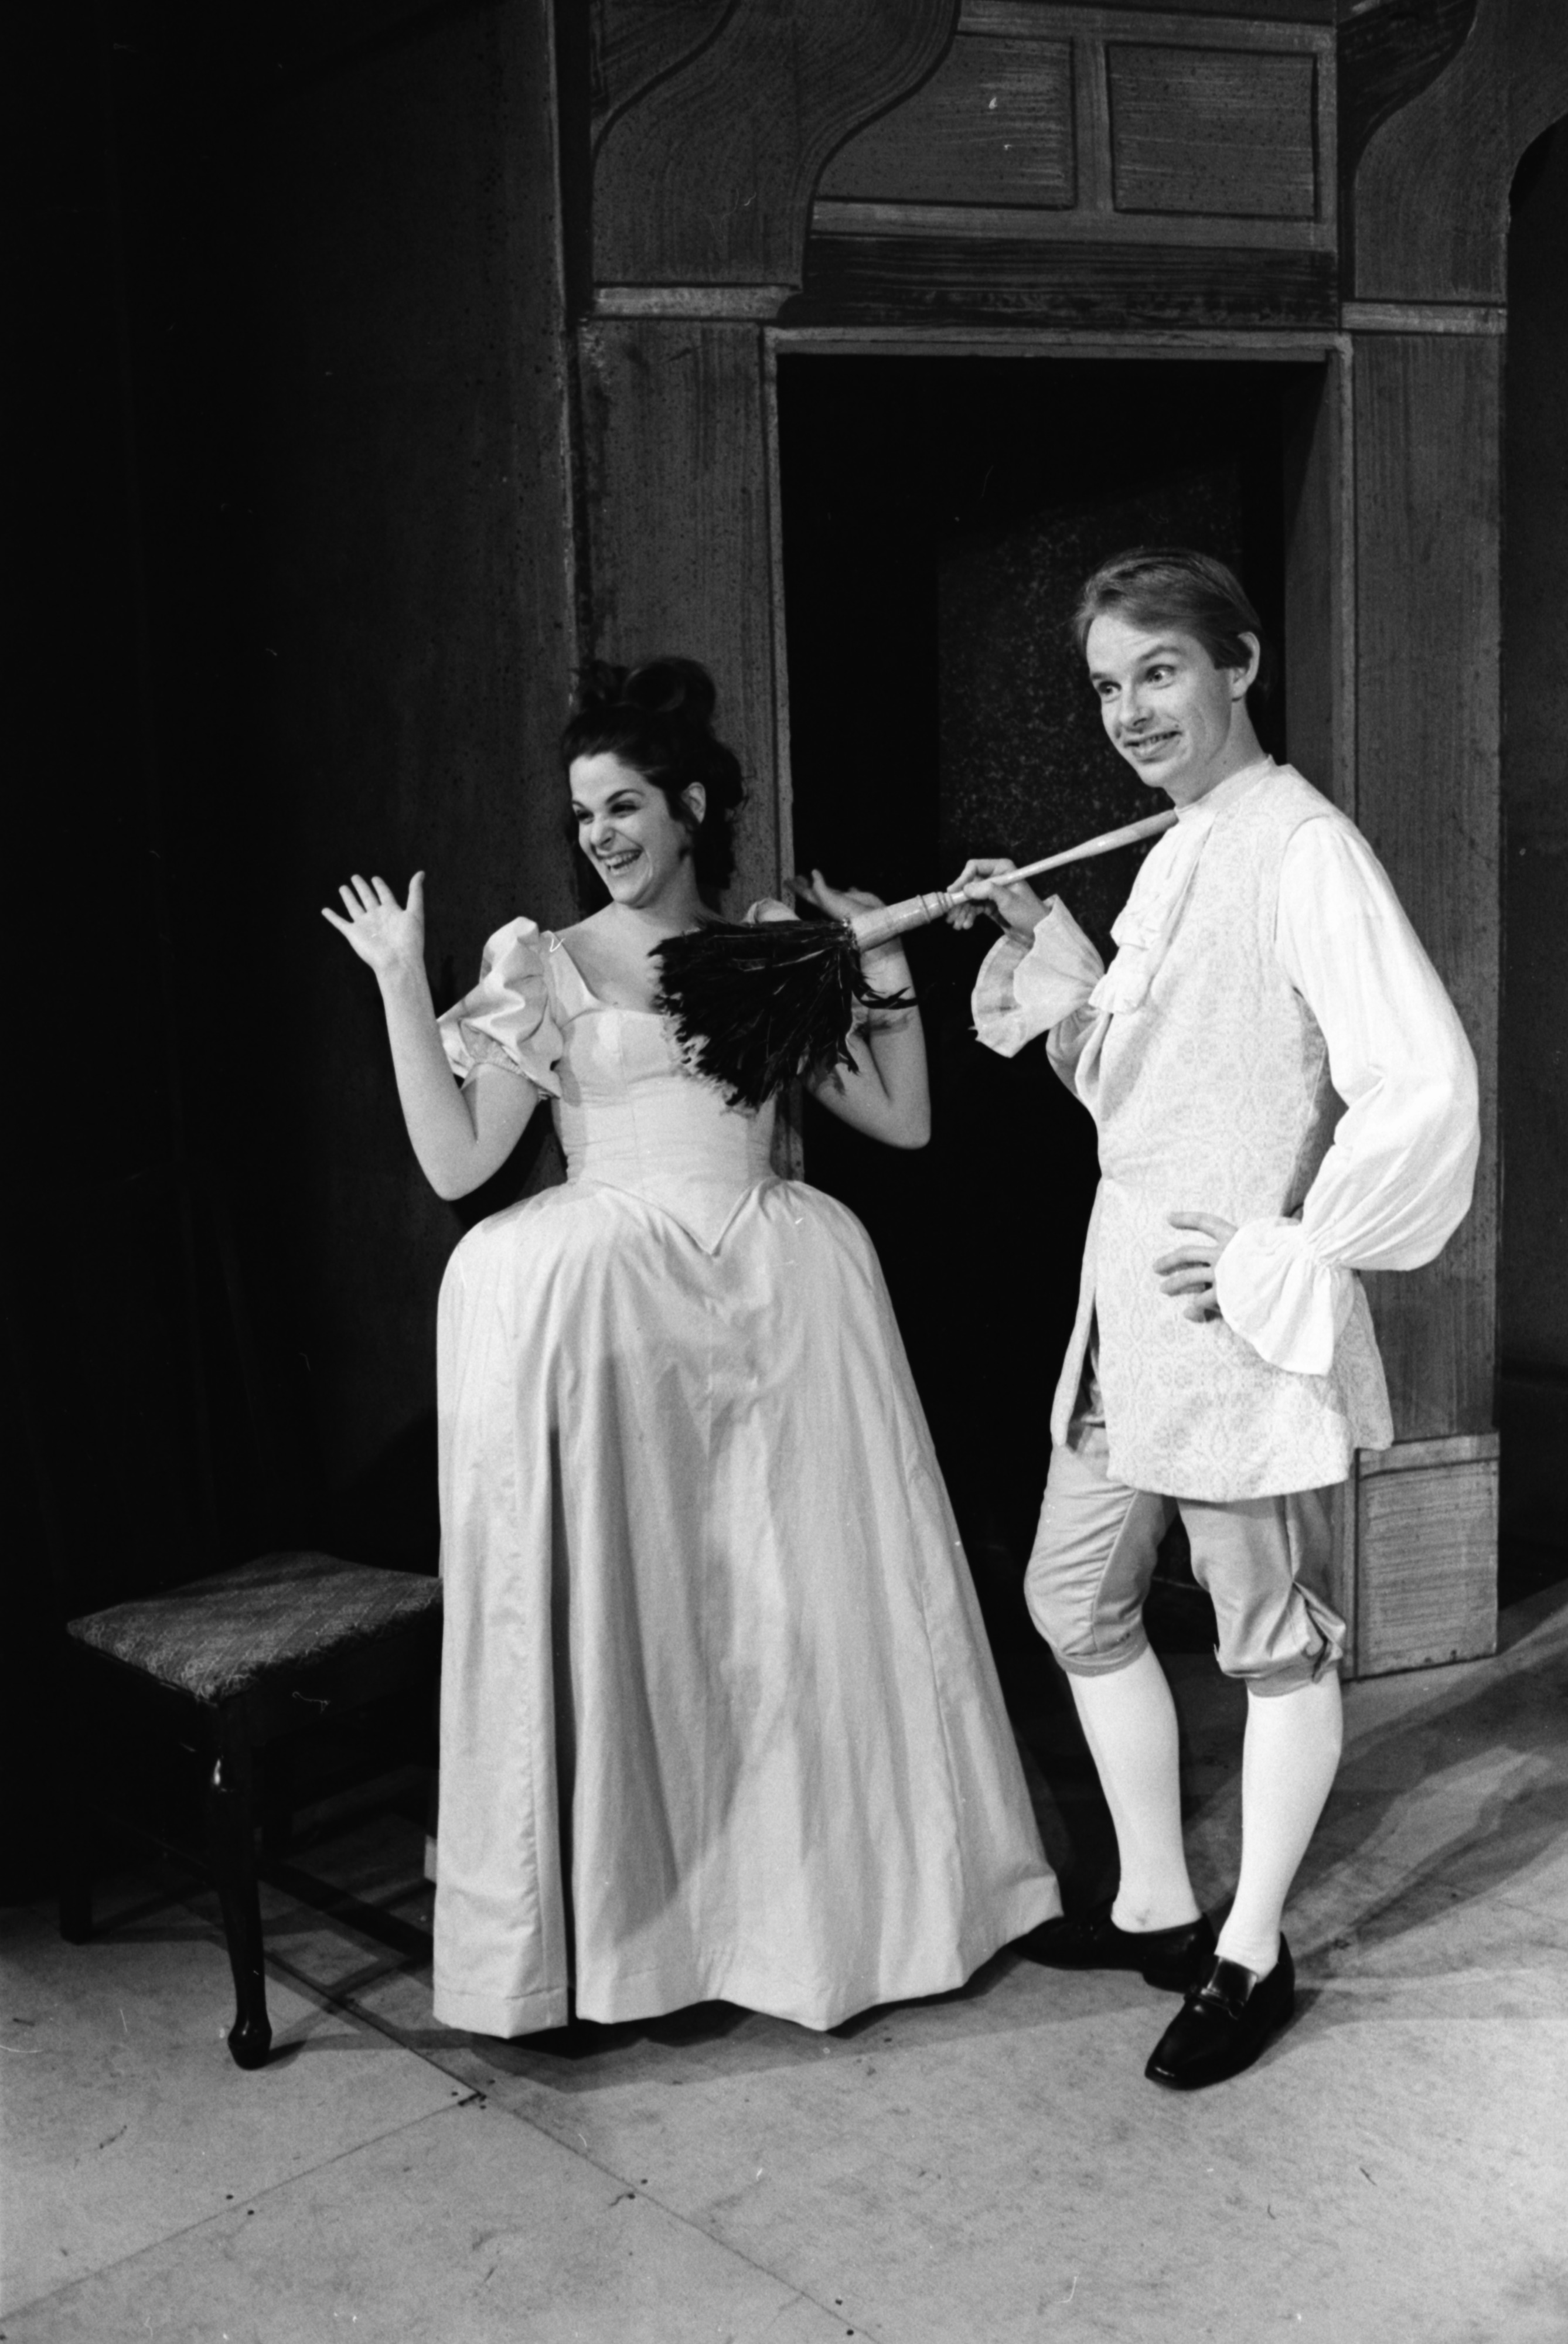 Gilda Radner and James Berton Harris in Ann Arbor Civic Theatre Production of 'She Stoops to Conquer,' May 1969 image